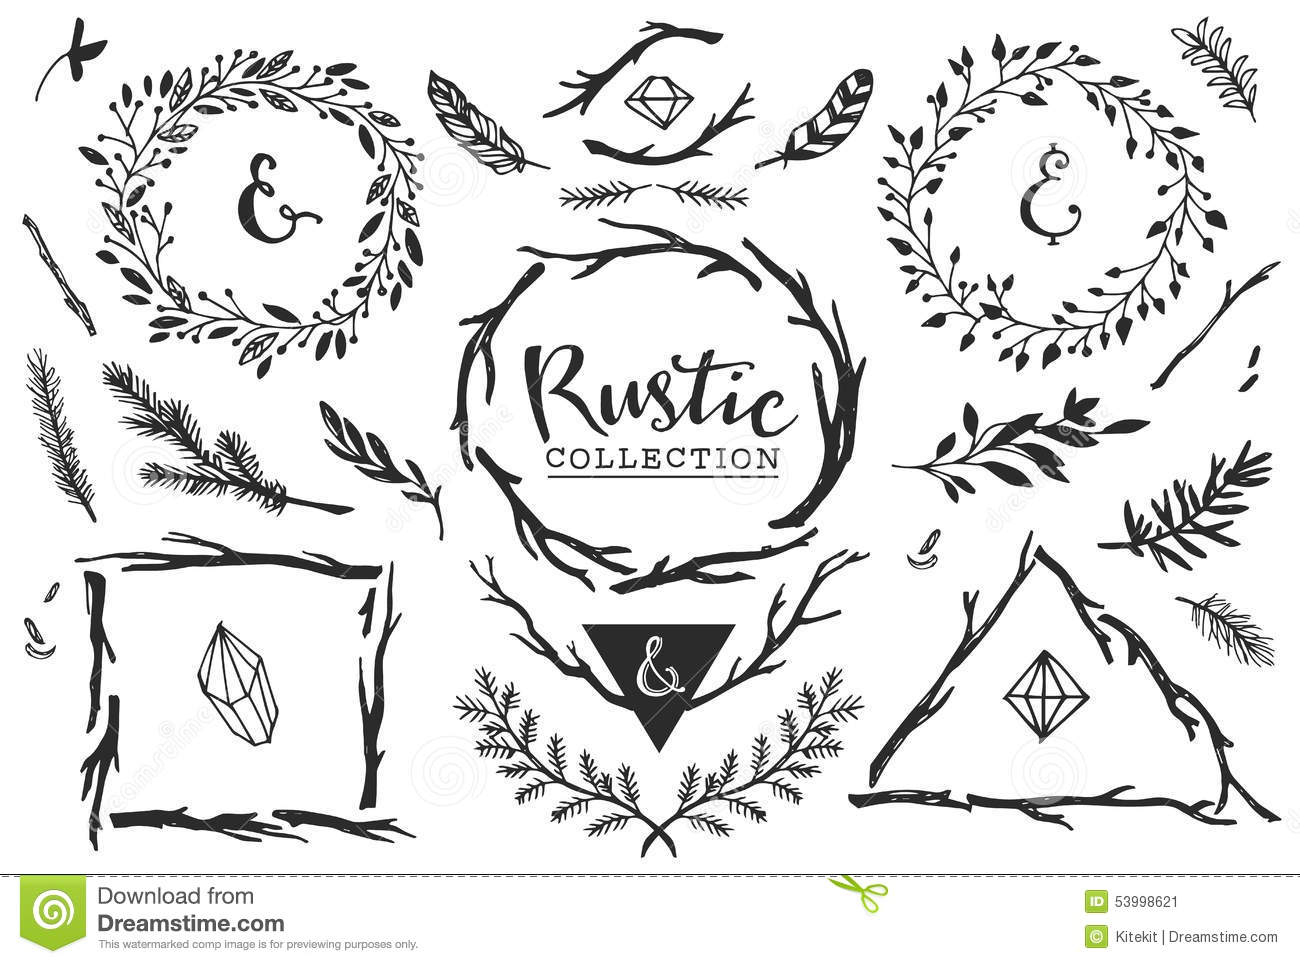 rustic decorative elements with lettering hand drawn vintage